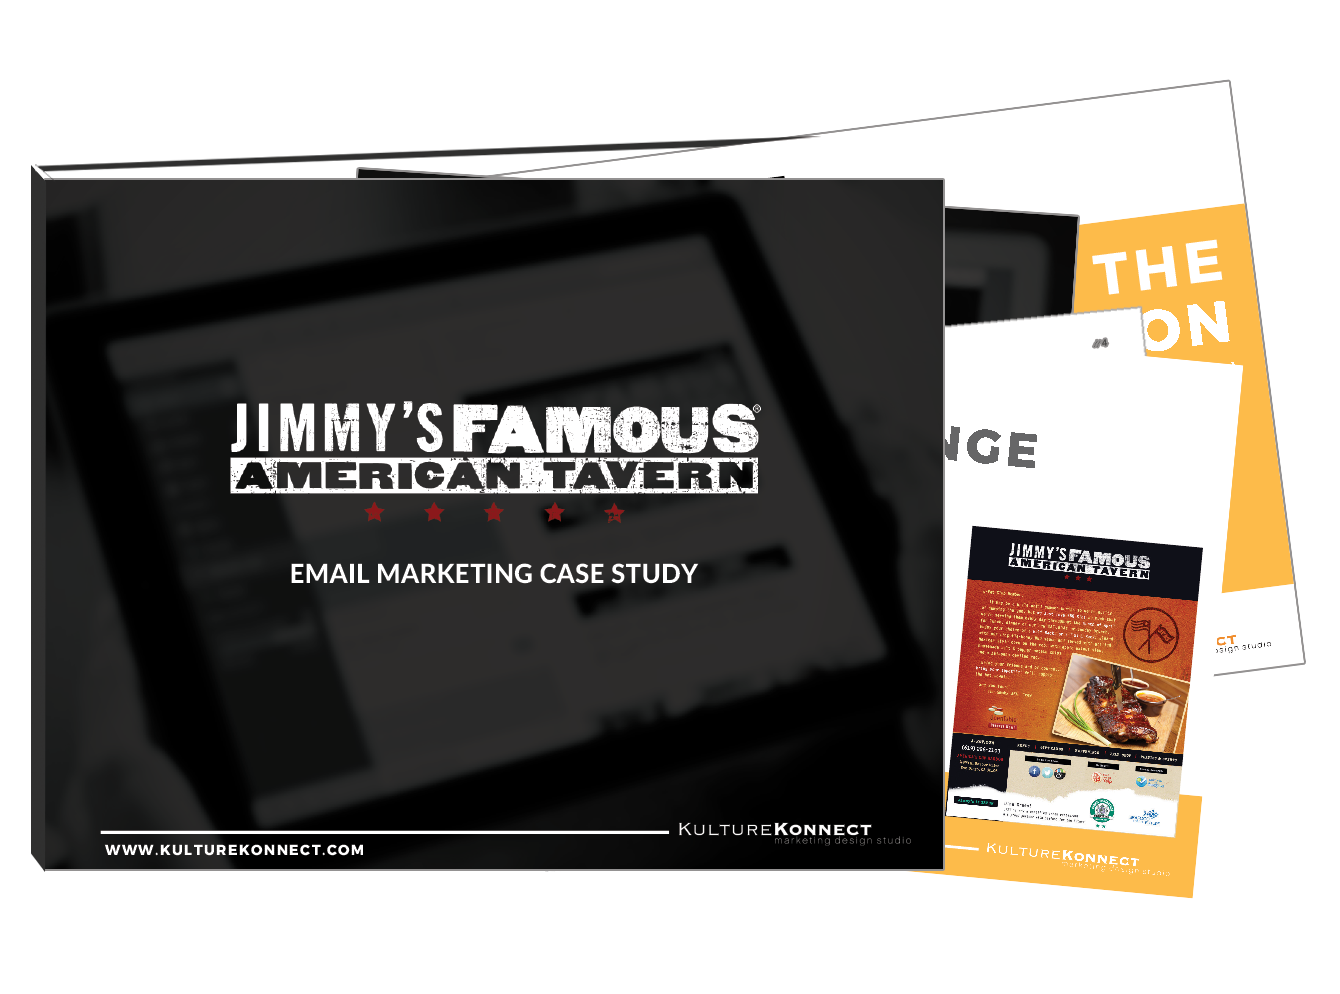 restaurant-email-marketing-case-study-youll-want-to-see-for-yourself.png